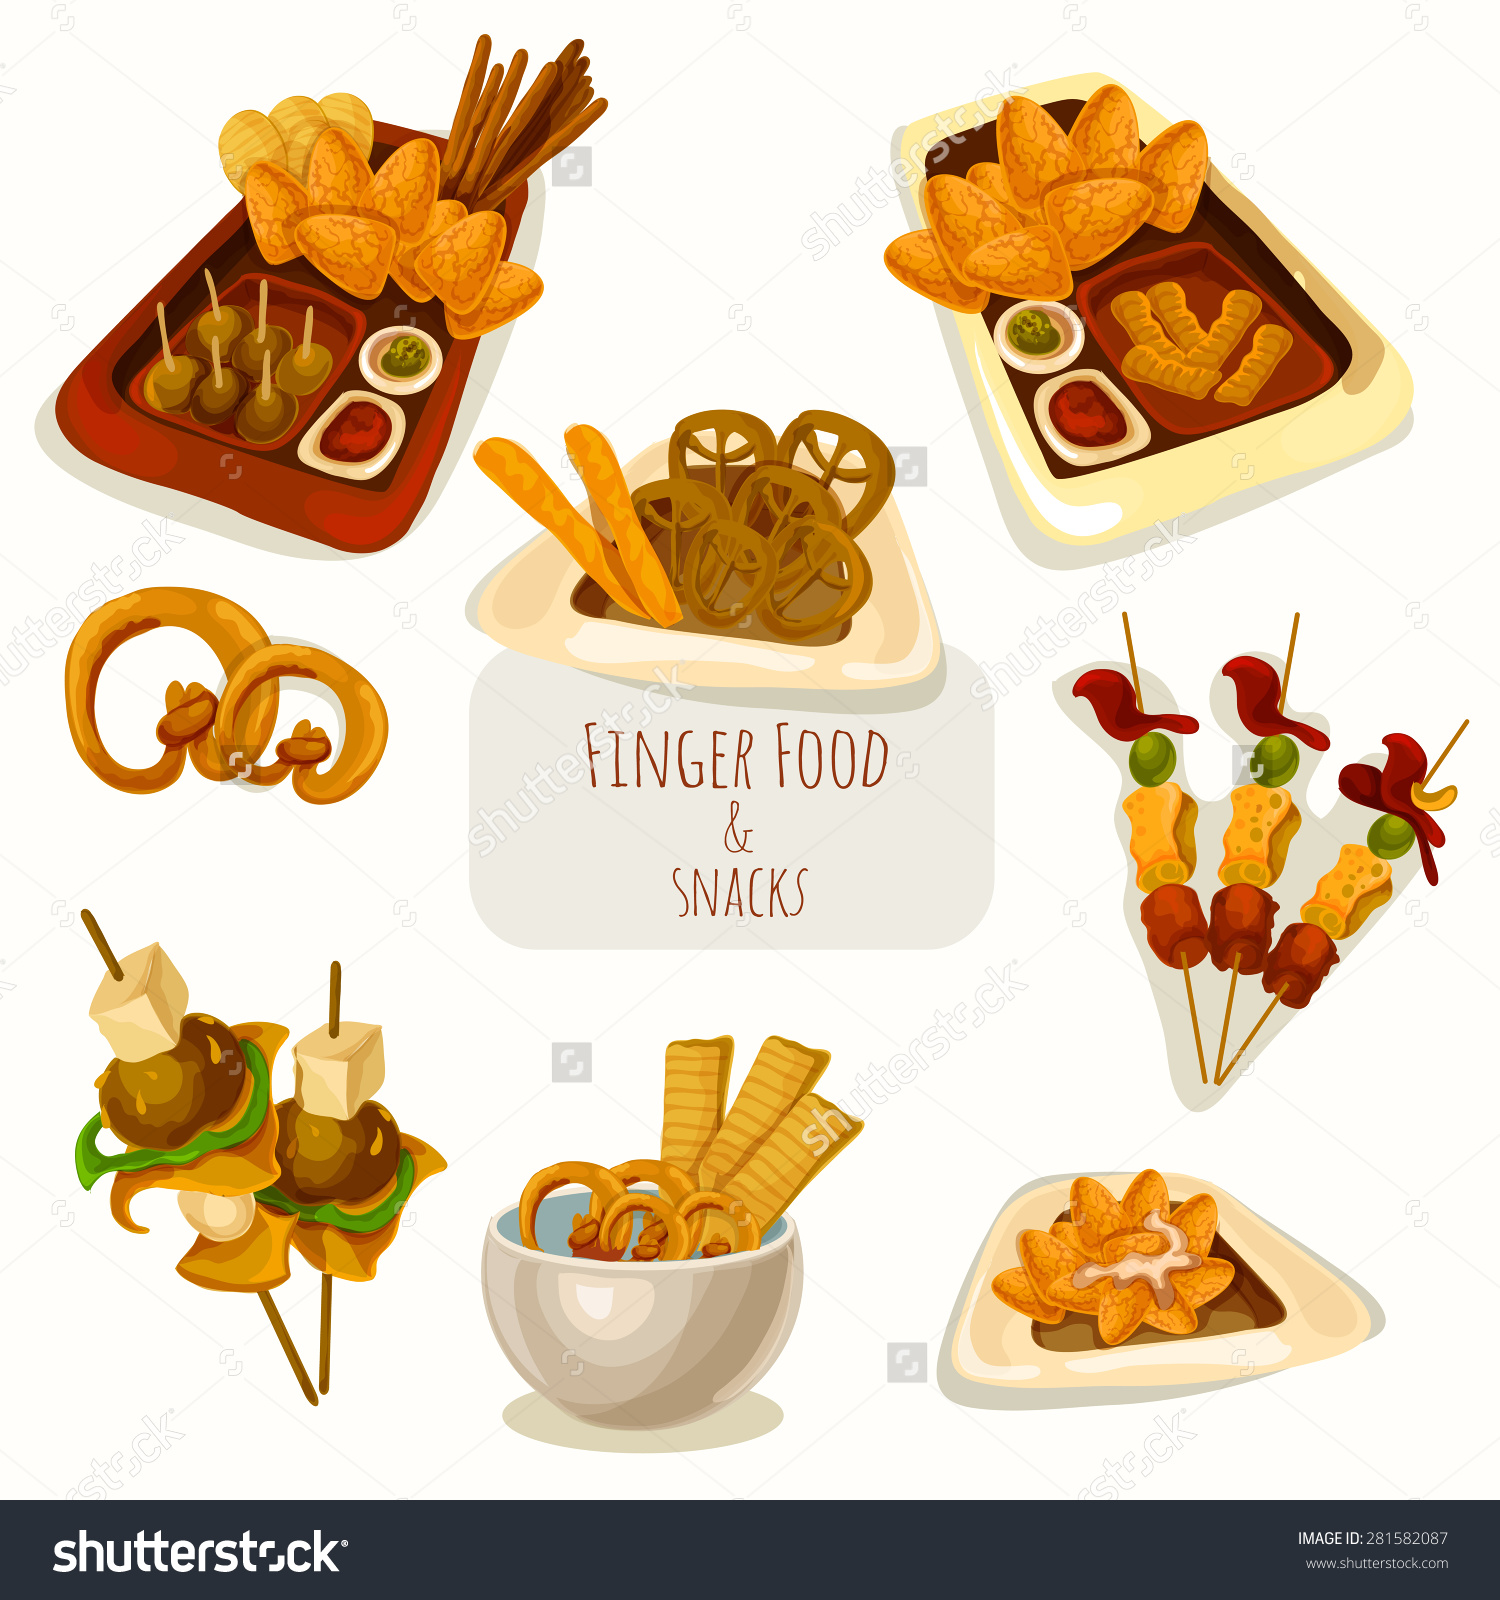 Finger food clipart free.